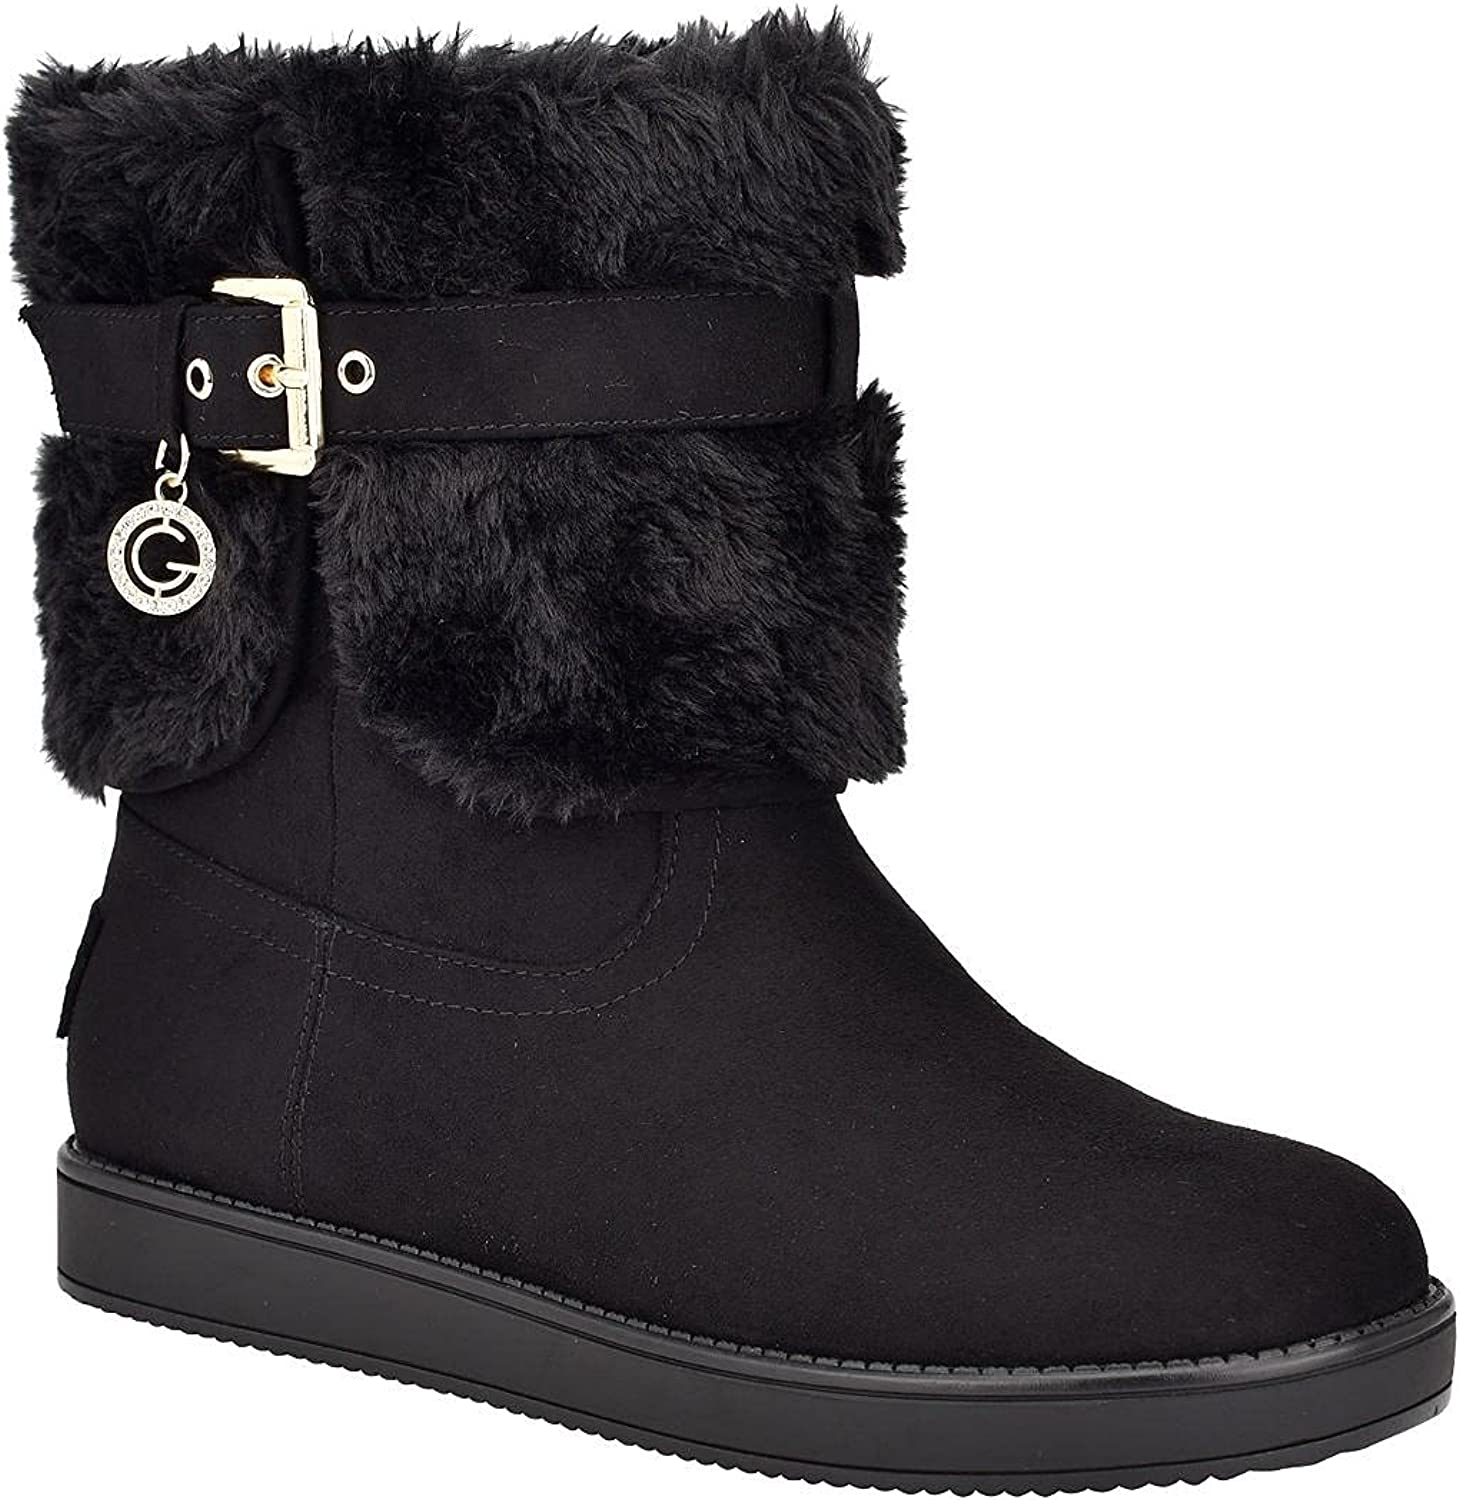 GBG Los Angeles Womens Adlea Cold Weather Winter Boots